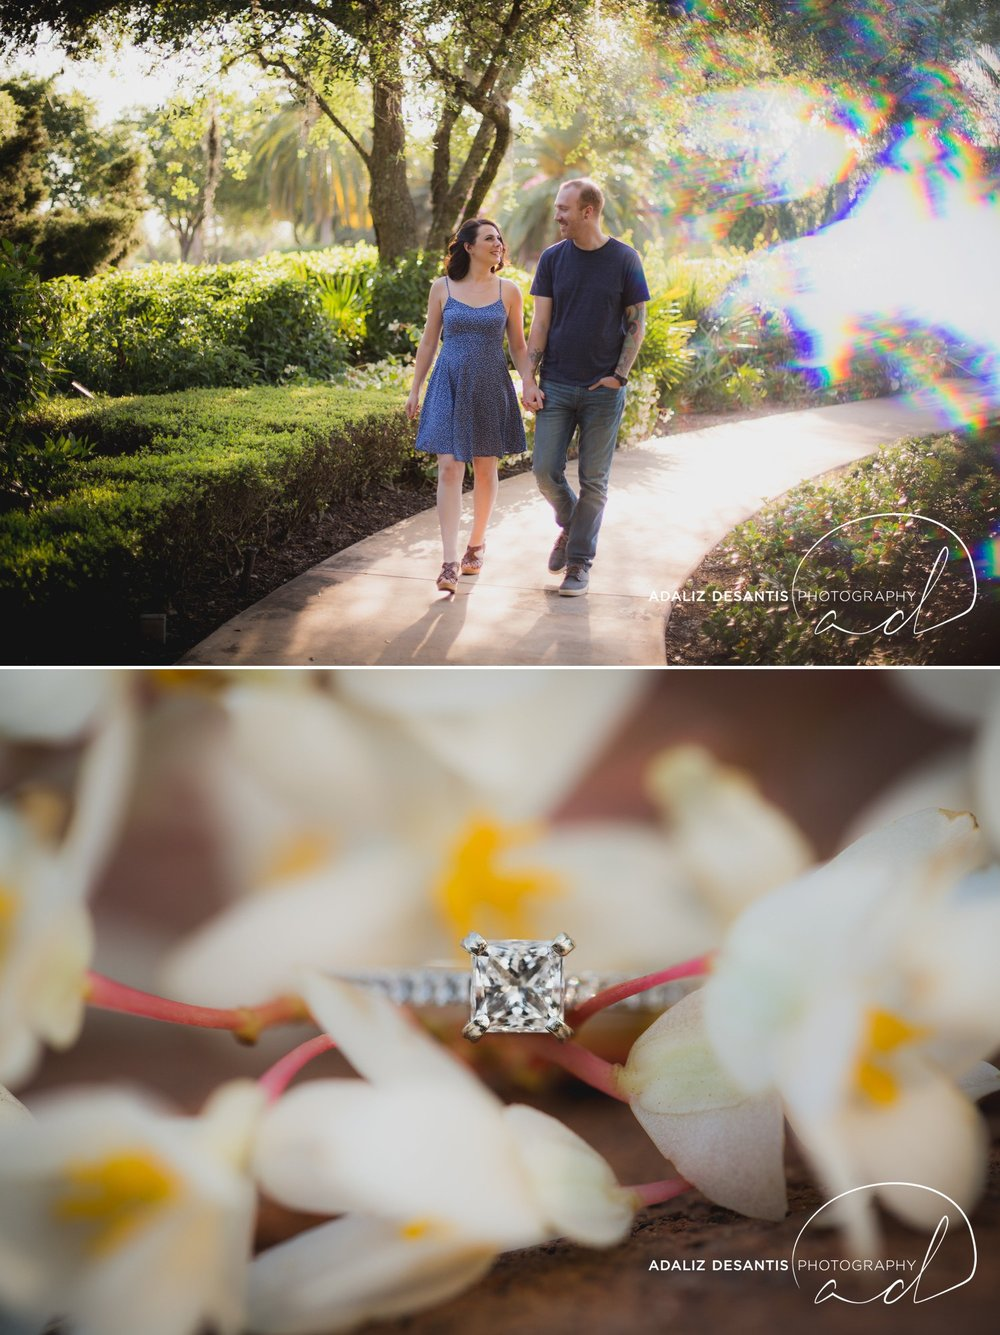 parkland golf and country club engagement session fort lauderdale south flrida 8.jpg